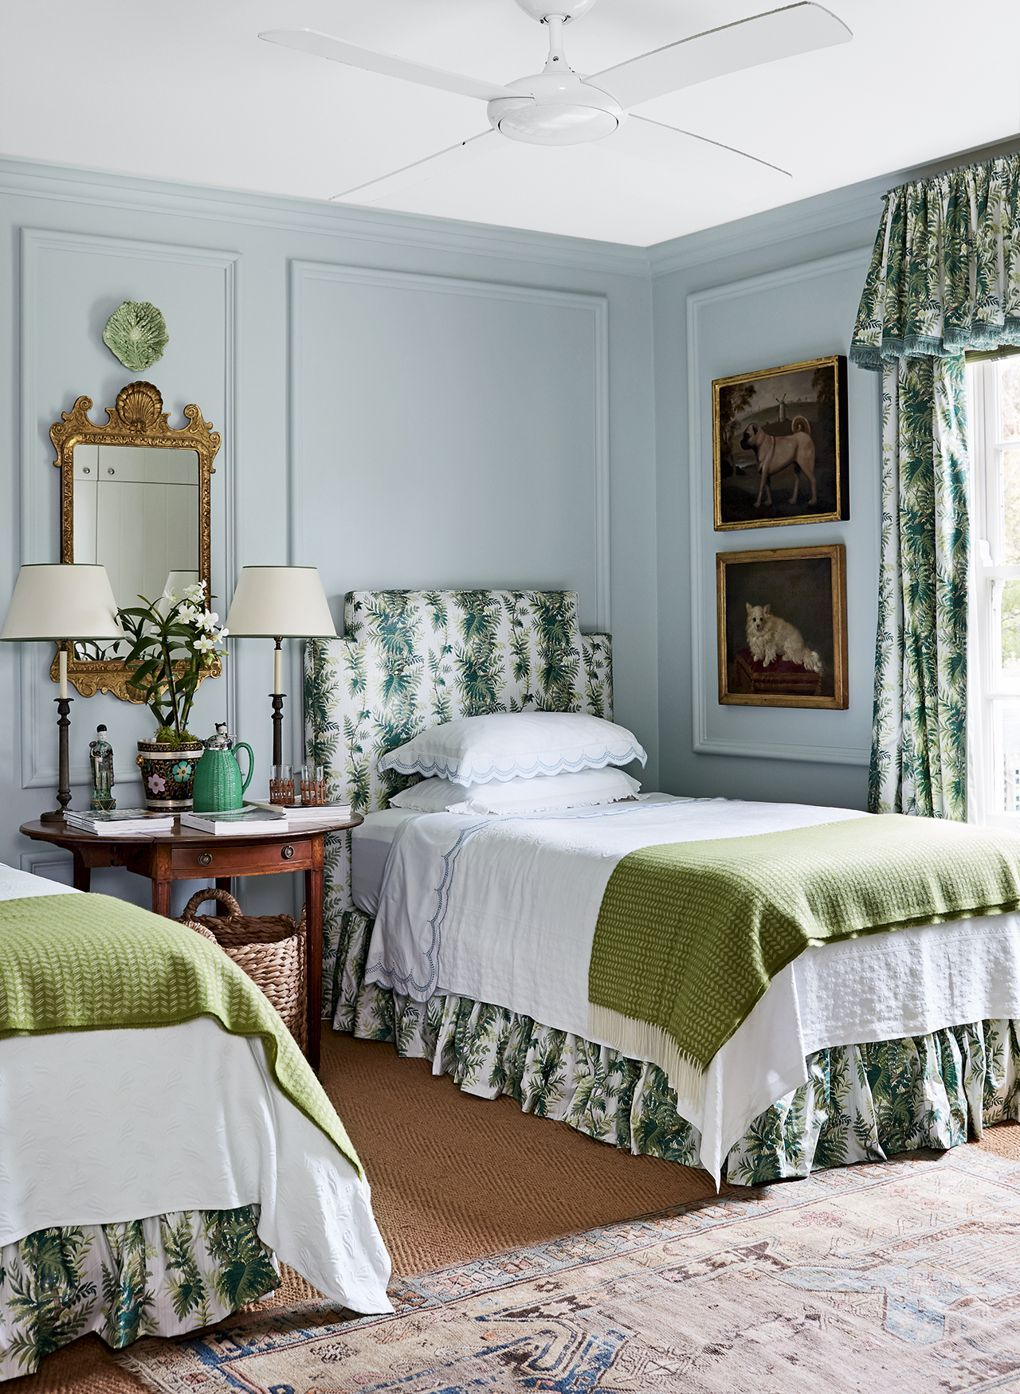 Tour an australian home that takes style cues from the manors of english countryside also what we loved this week in bedrooms closets pinterest rh